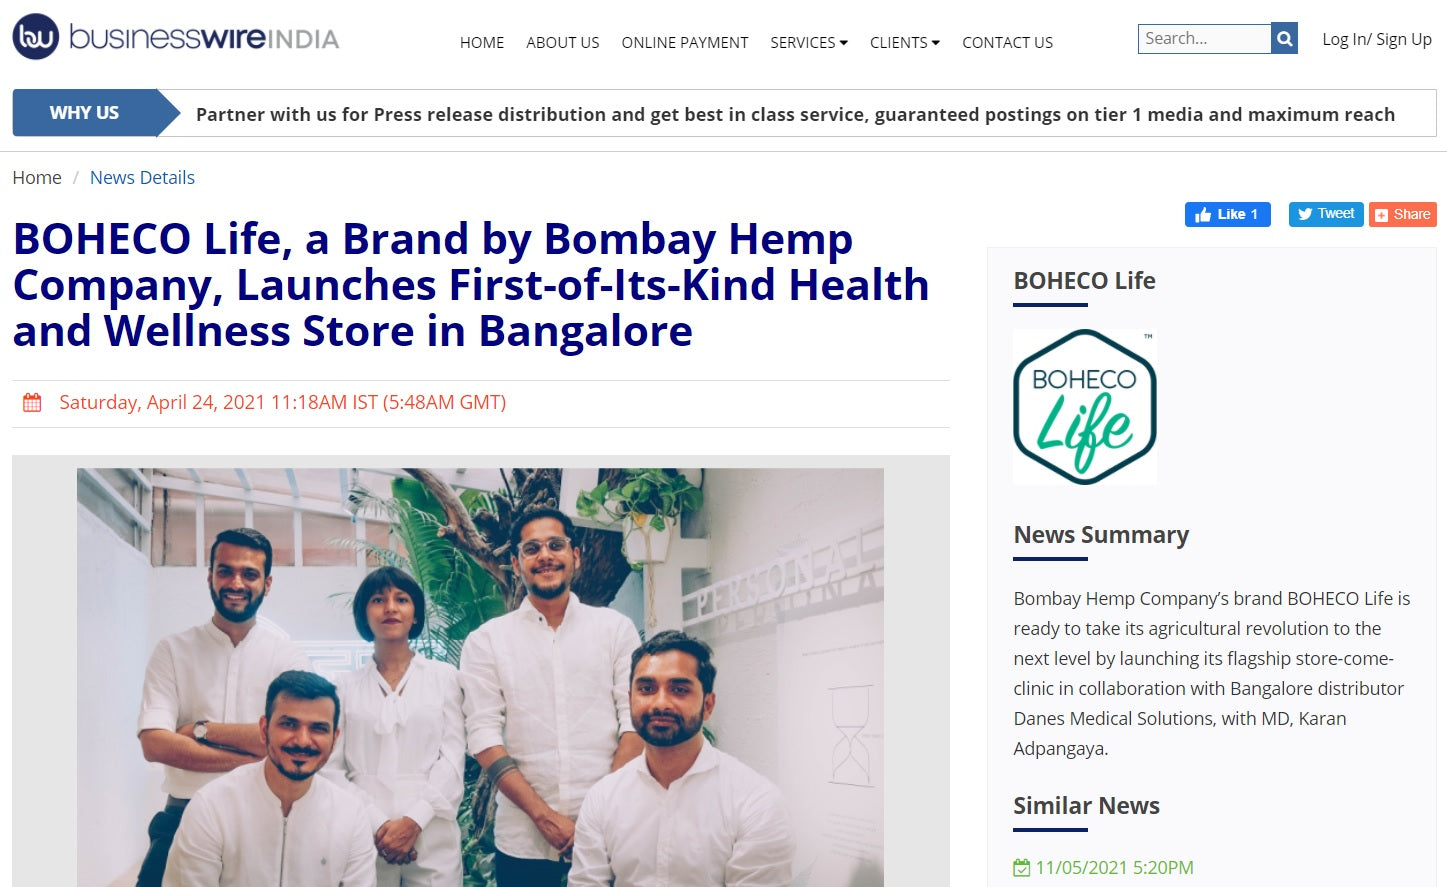 BOHECO Life, a Brand by Bombay Hemp Company, Launches First-of-Its-Kind Health and Wellness Store in Bangalore, BusinessWire India, 24th April 2021